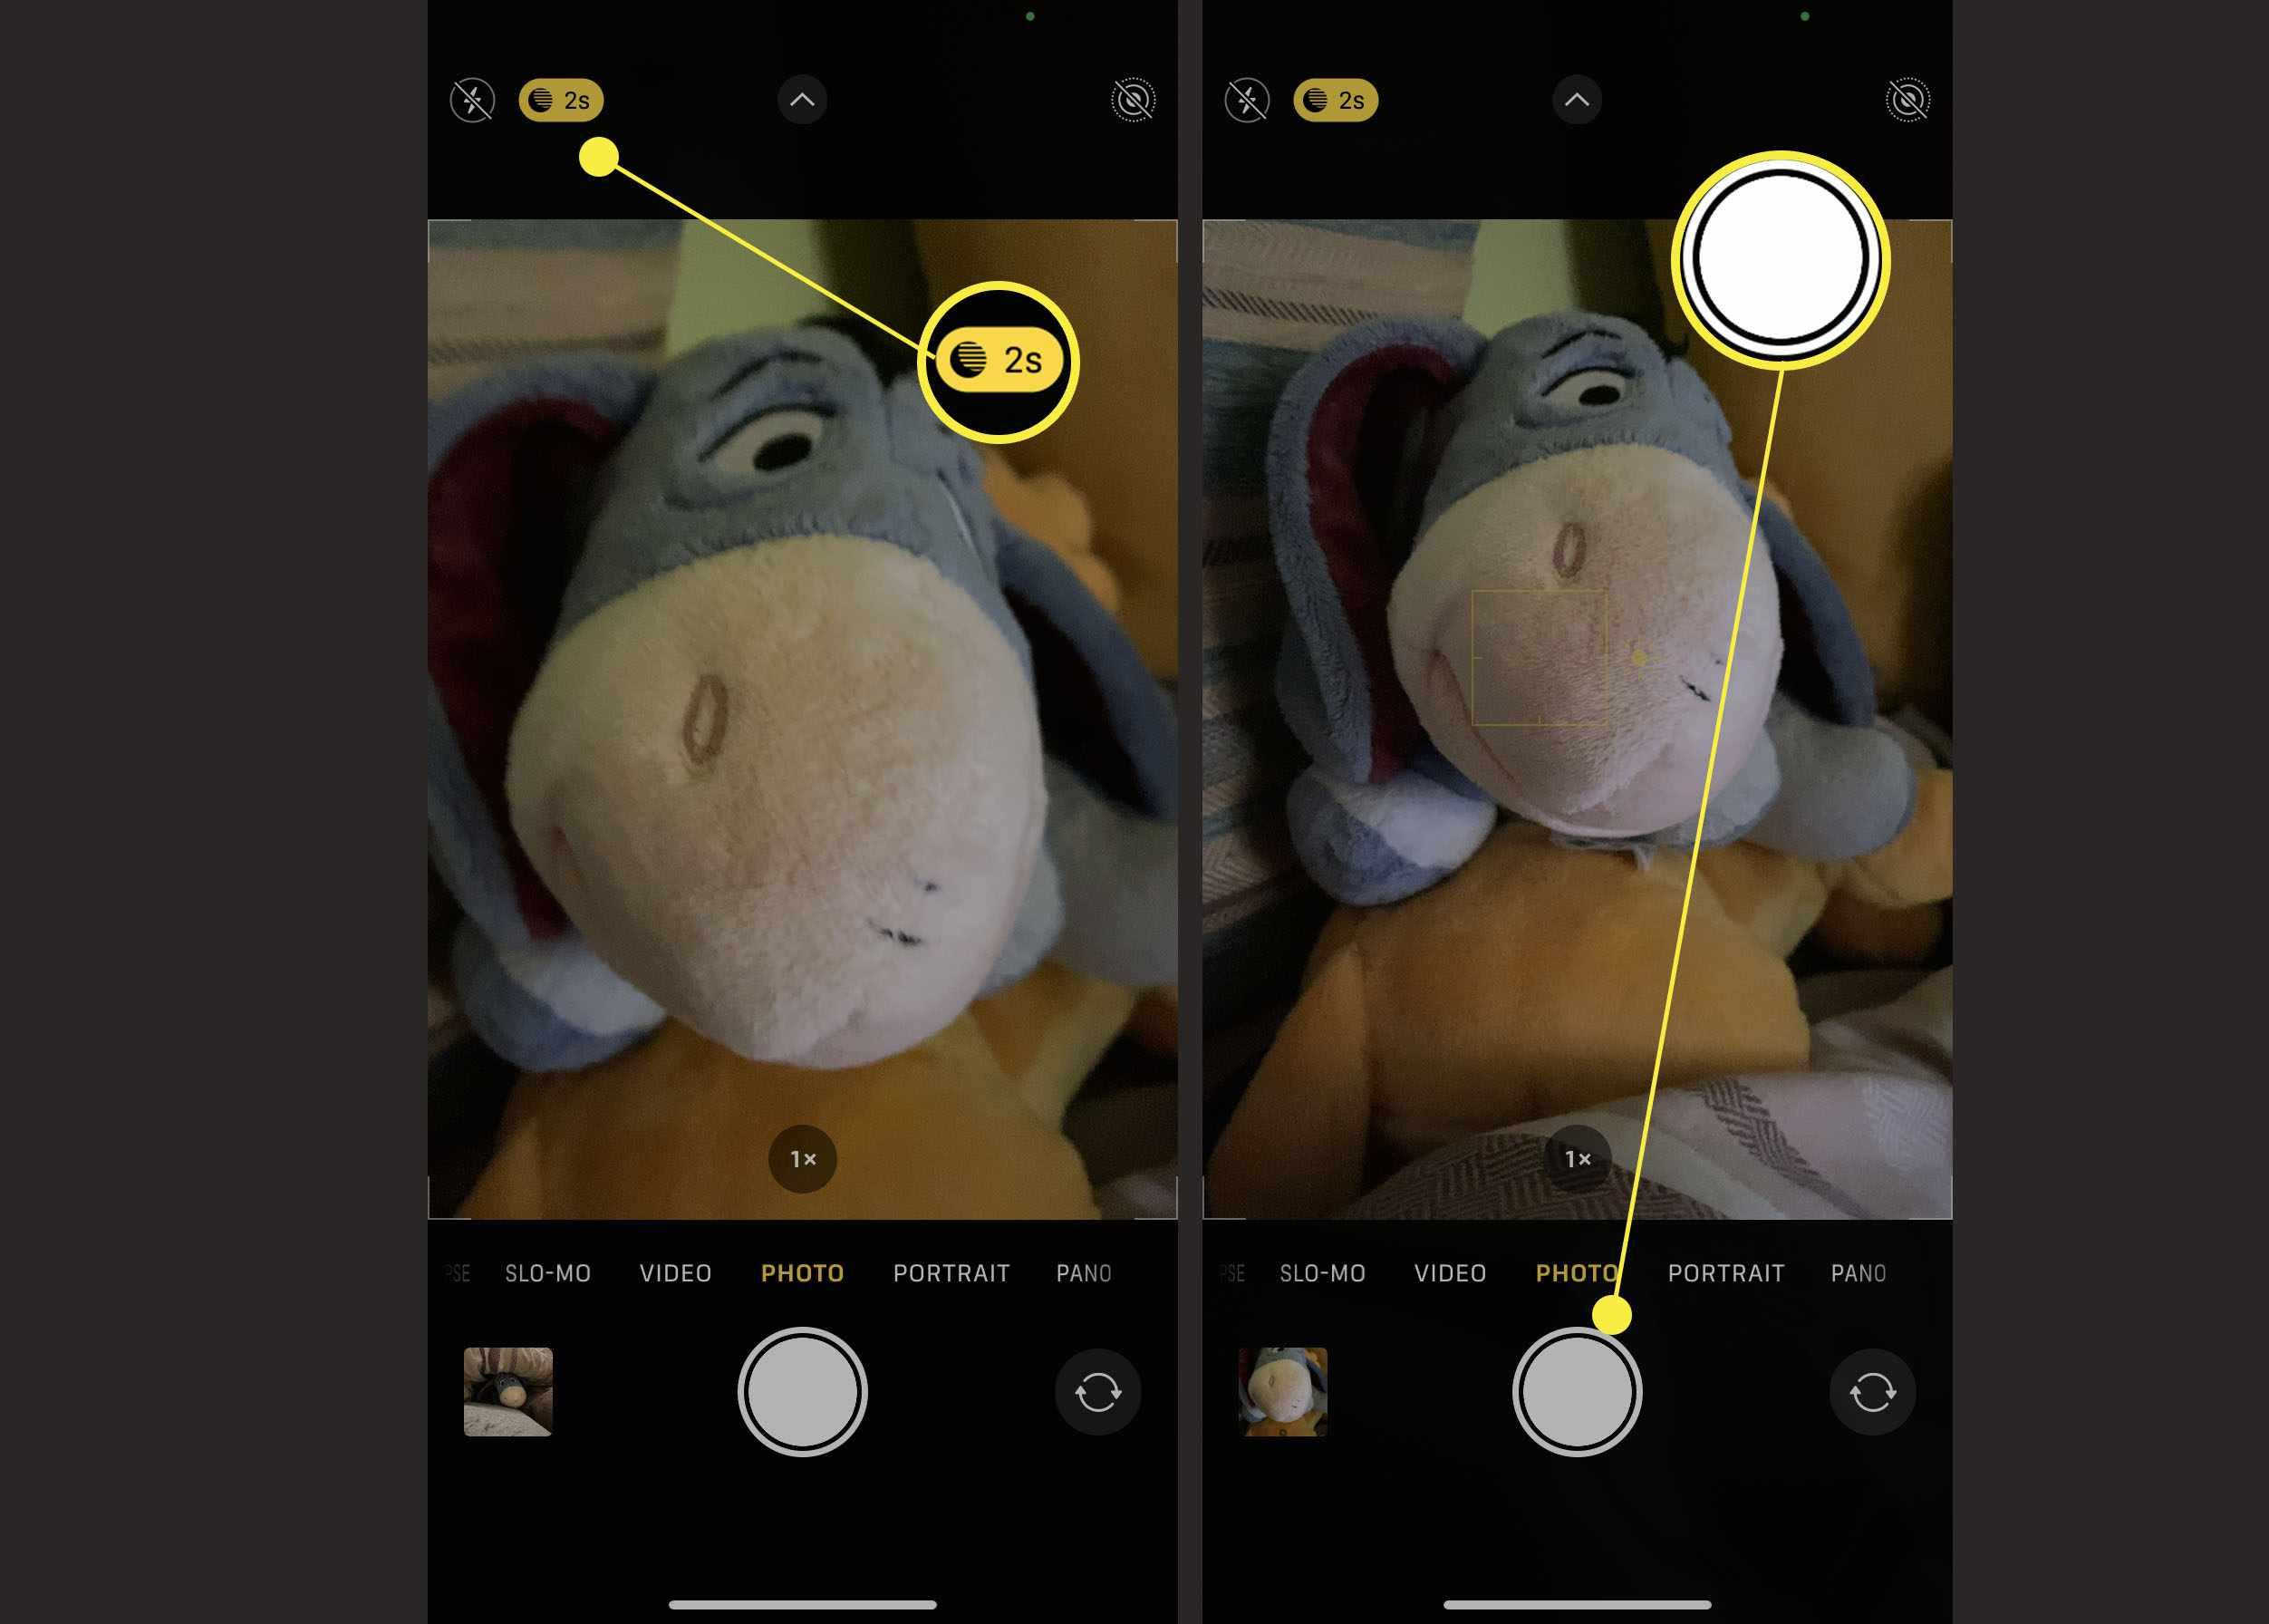 The steps required to check Night mode is on on your iPhone camera and how to take the photo